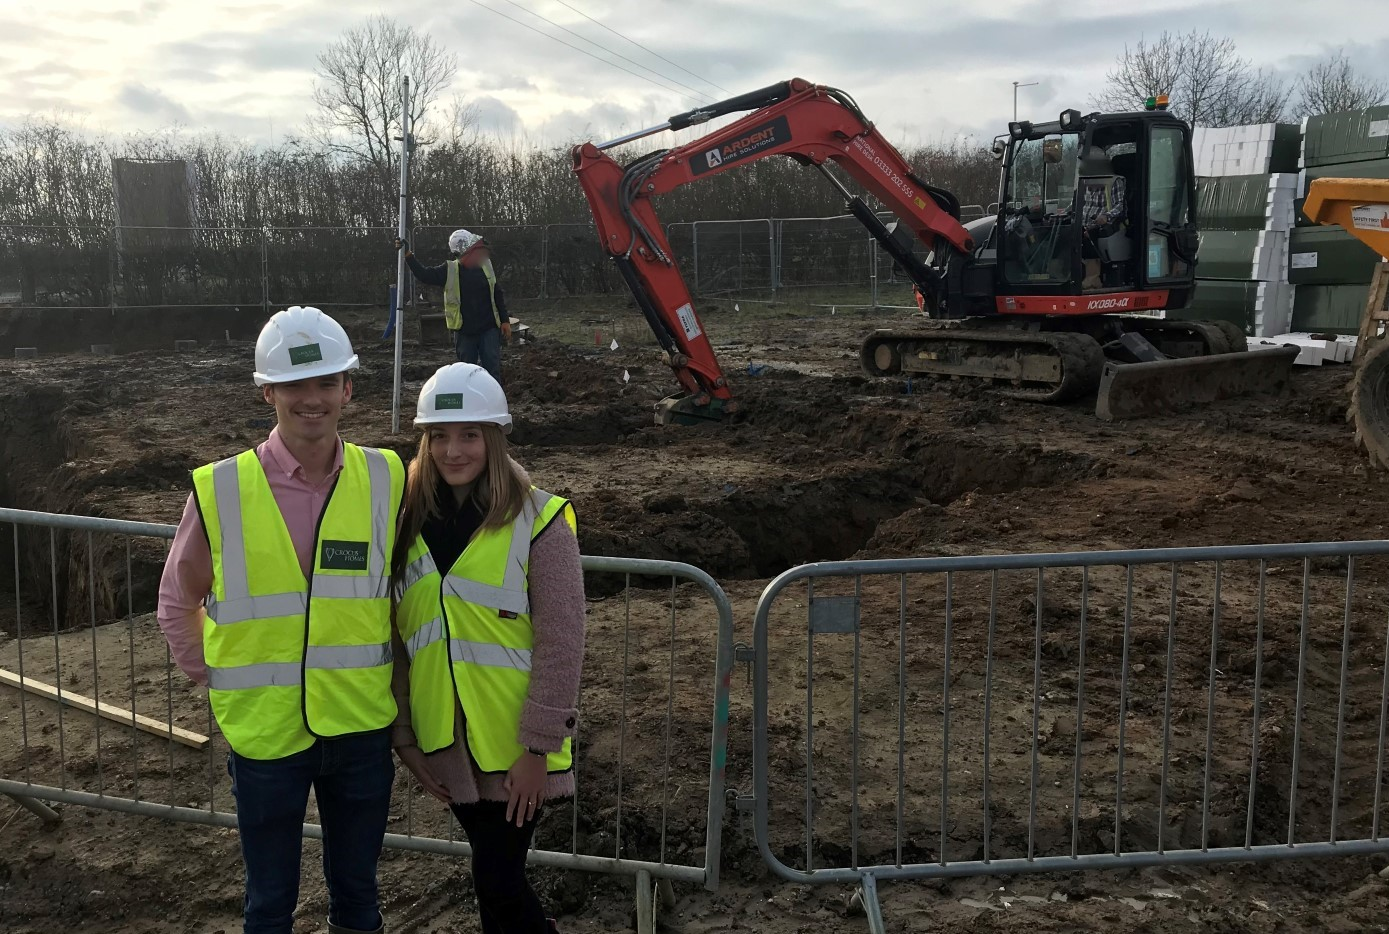 Crocus Homes Welcomes First Buyers to Site in Acle